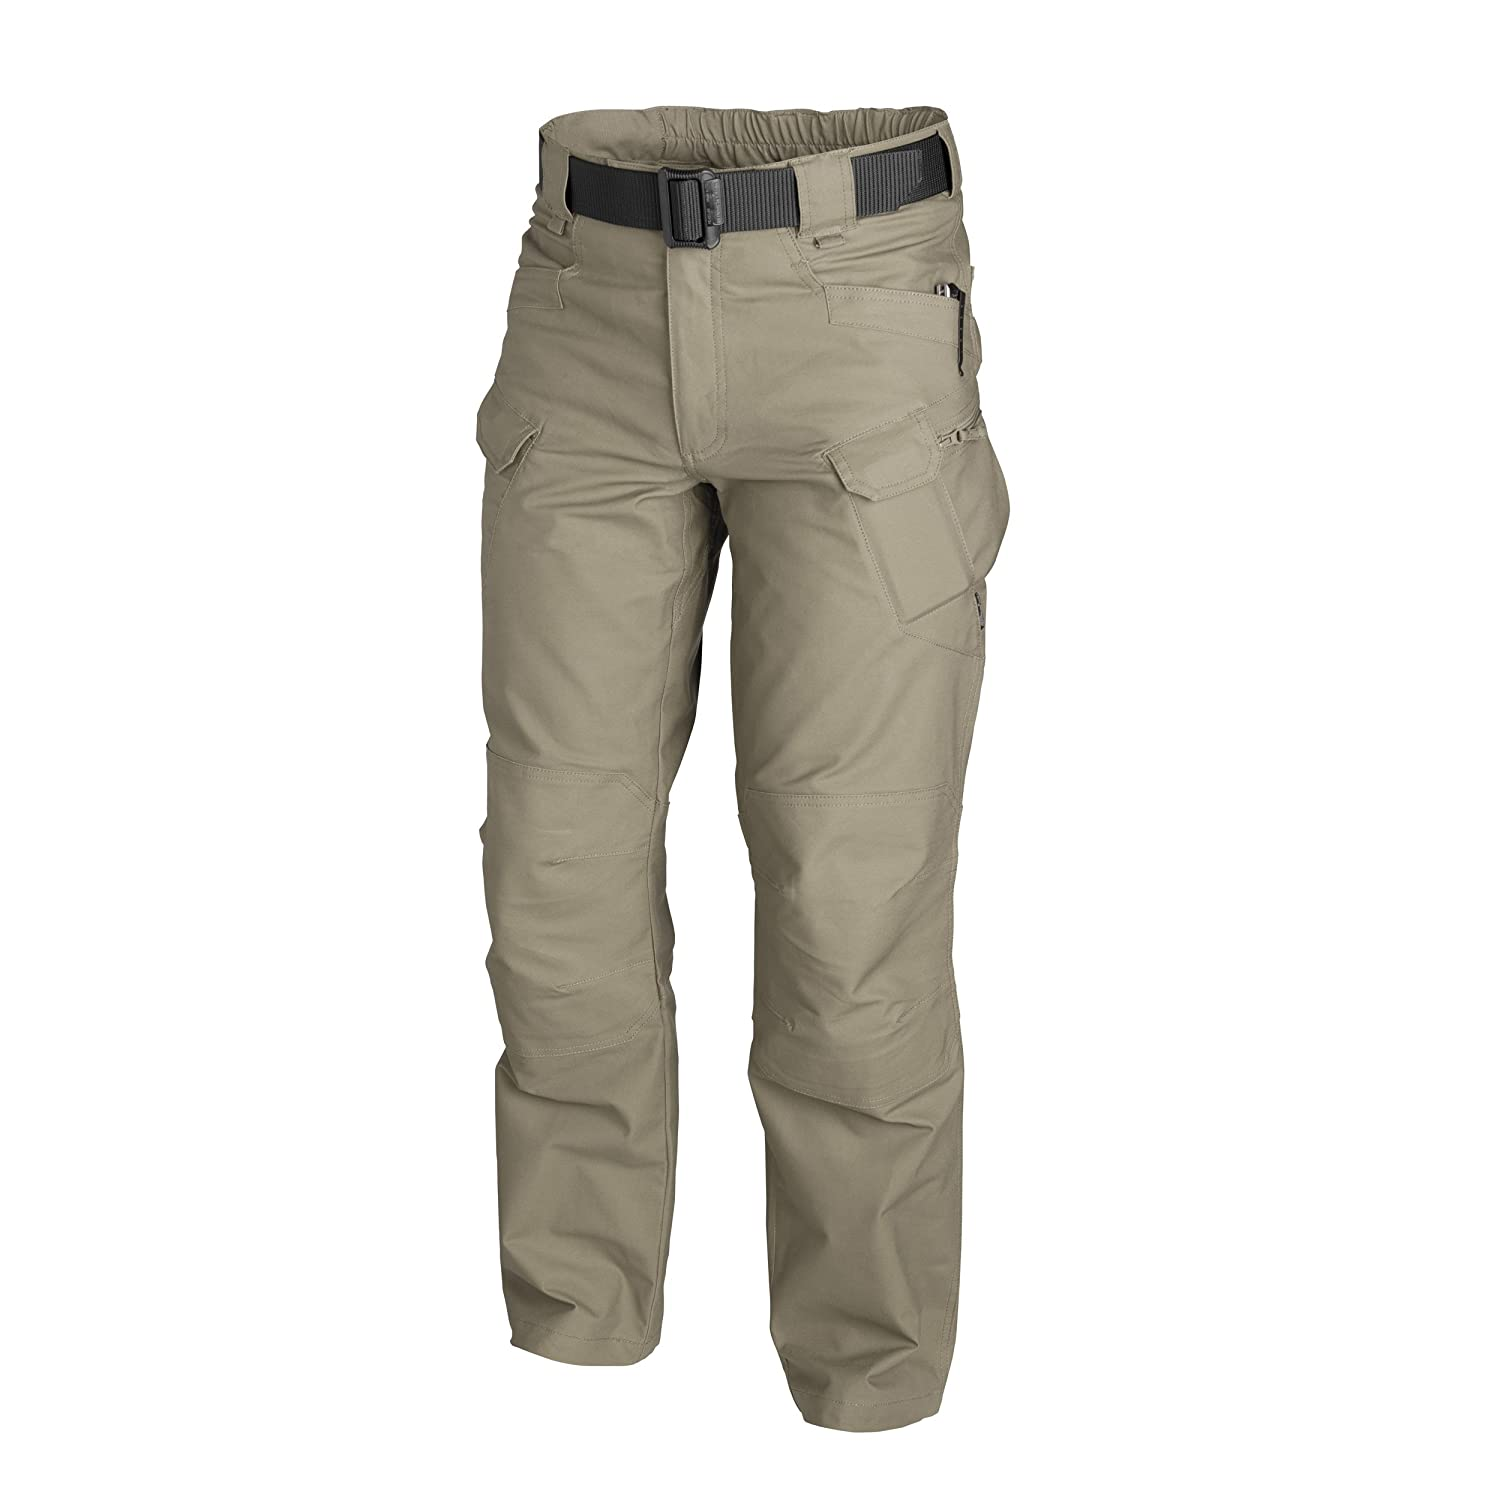 Helikon-Tex Urban Tactical Pants - Ripstop - Khaki